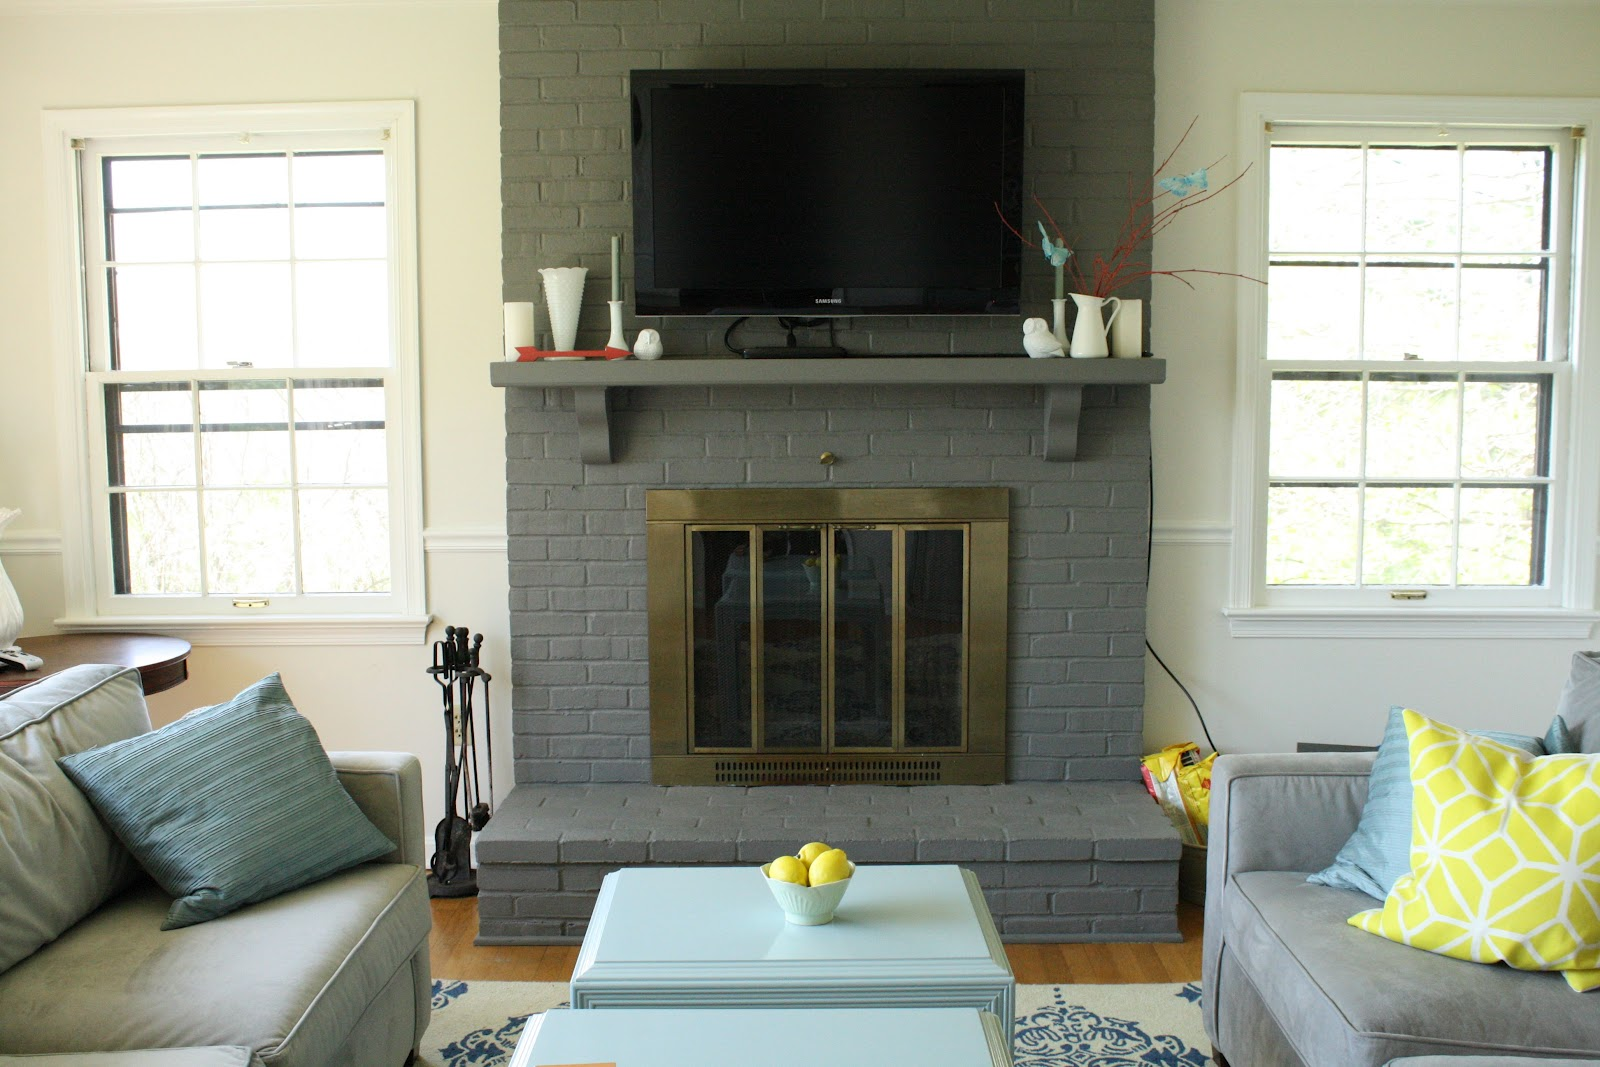 Repainting Fireplace Mantel 1600 x 1067